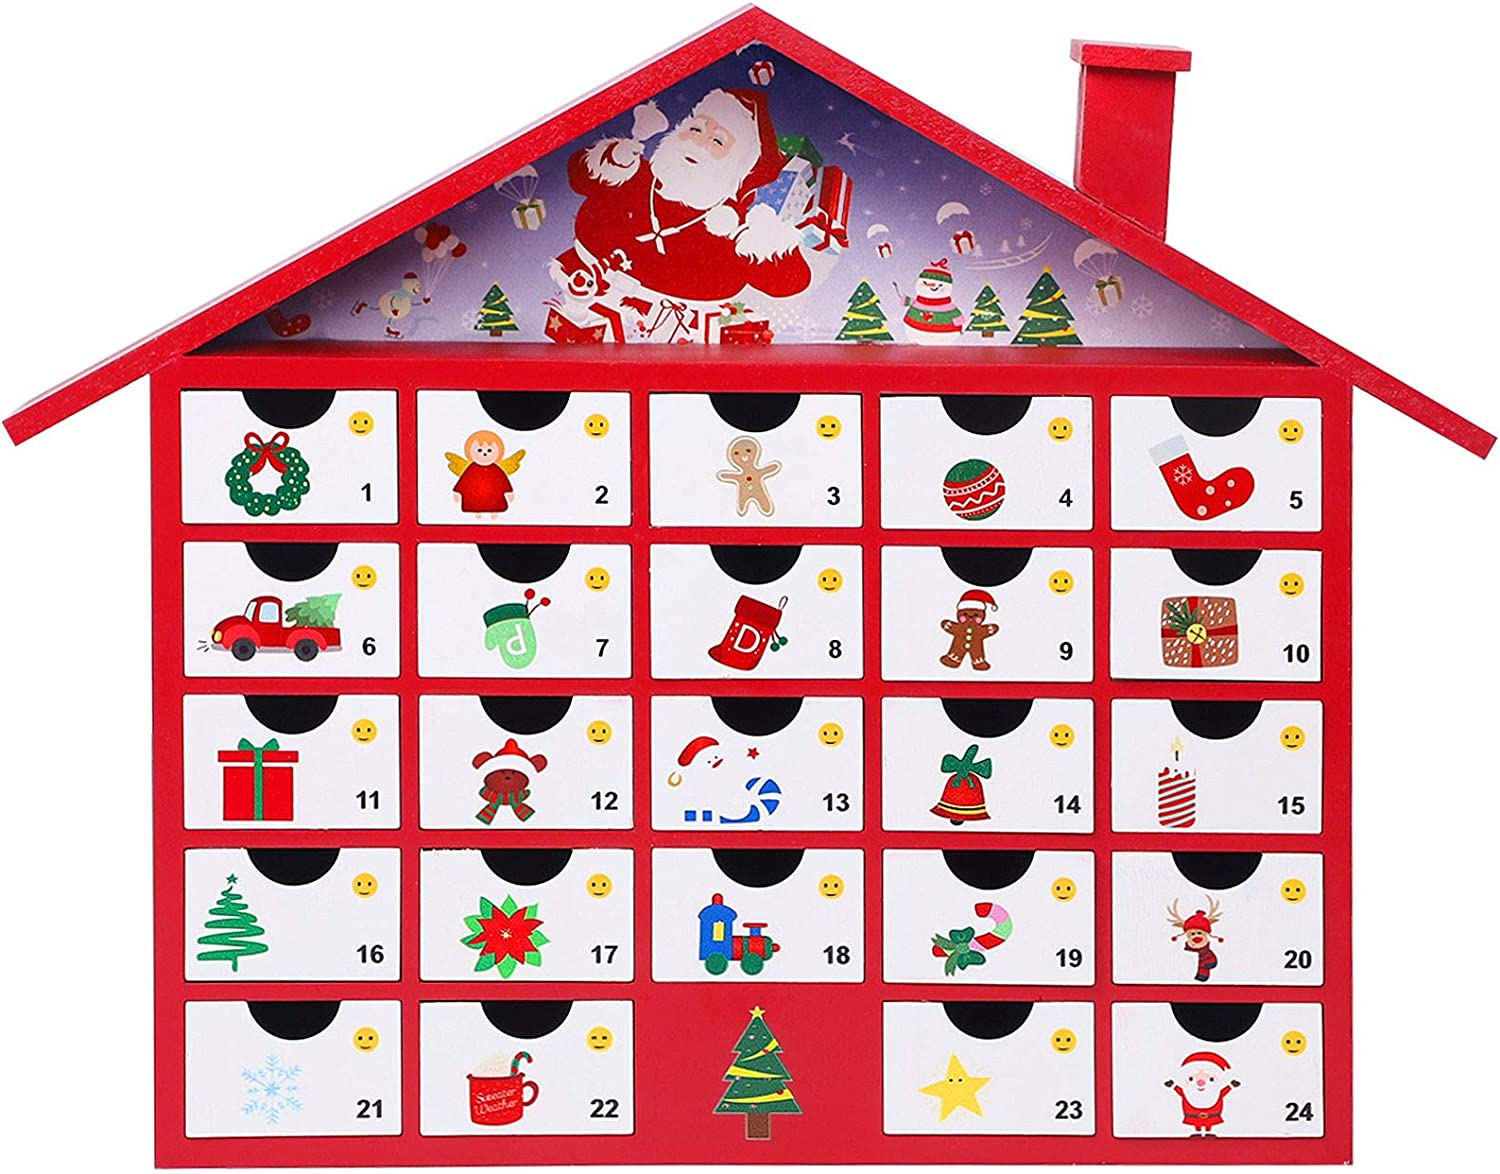 Juegoal Red Advent Calendar, Premium Hand Painted Christmas House with 24 Drawers Countdown to Christmas, Refillable Wooden Advent